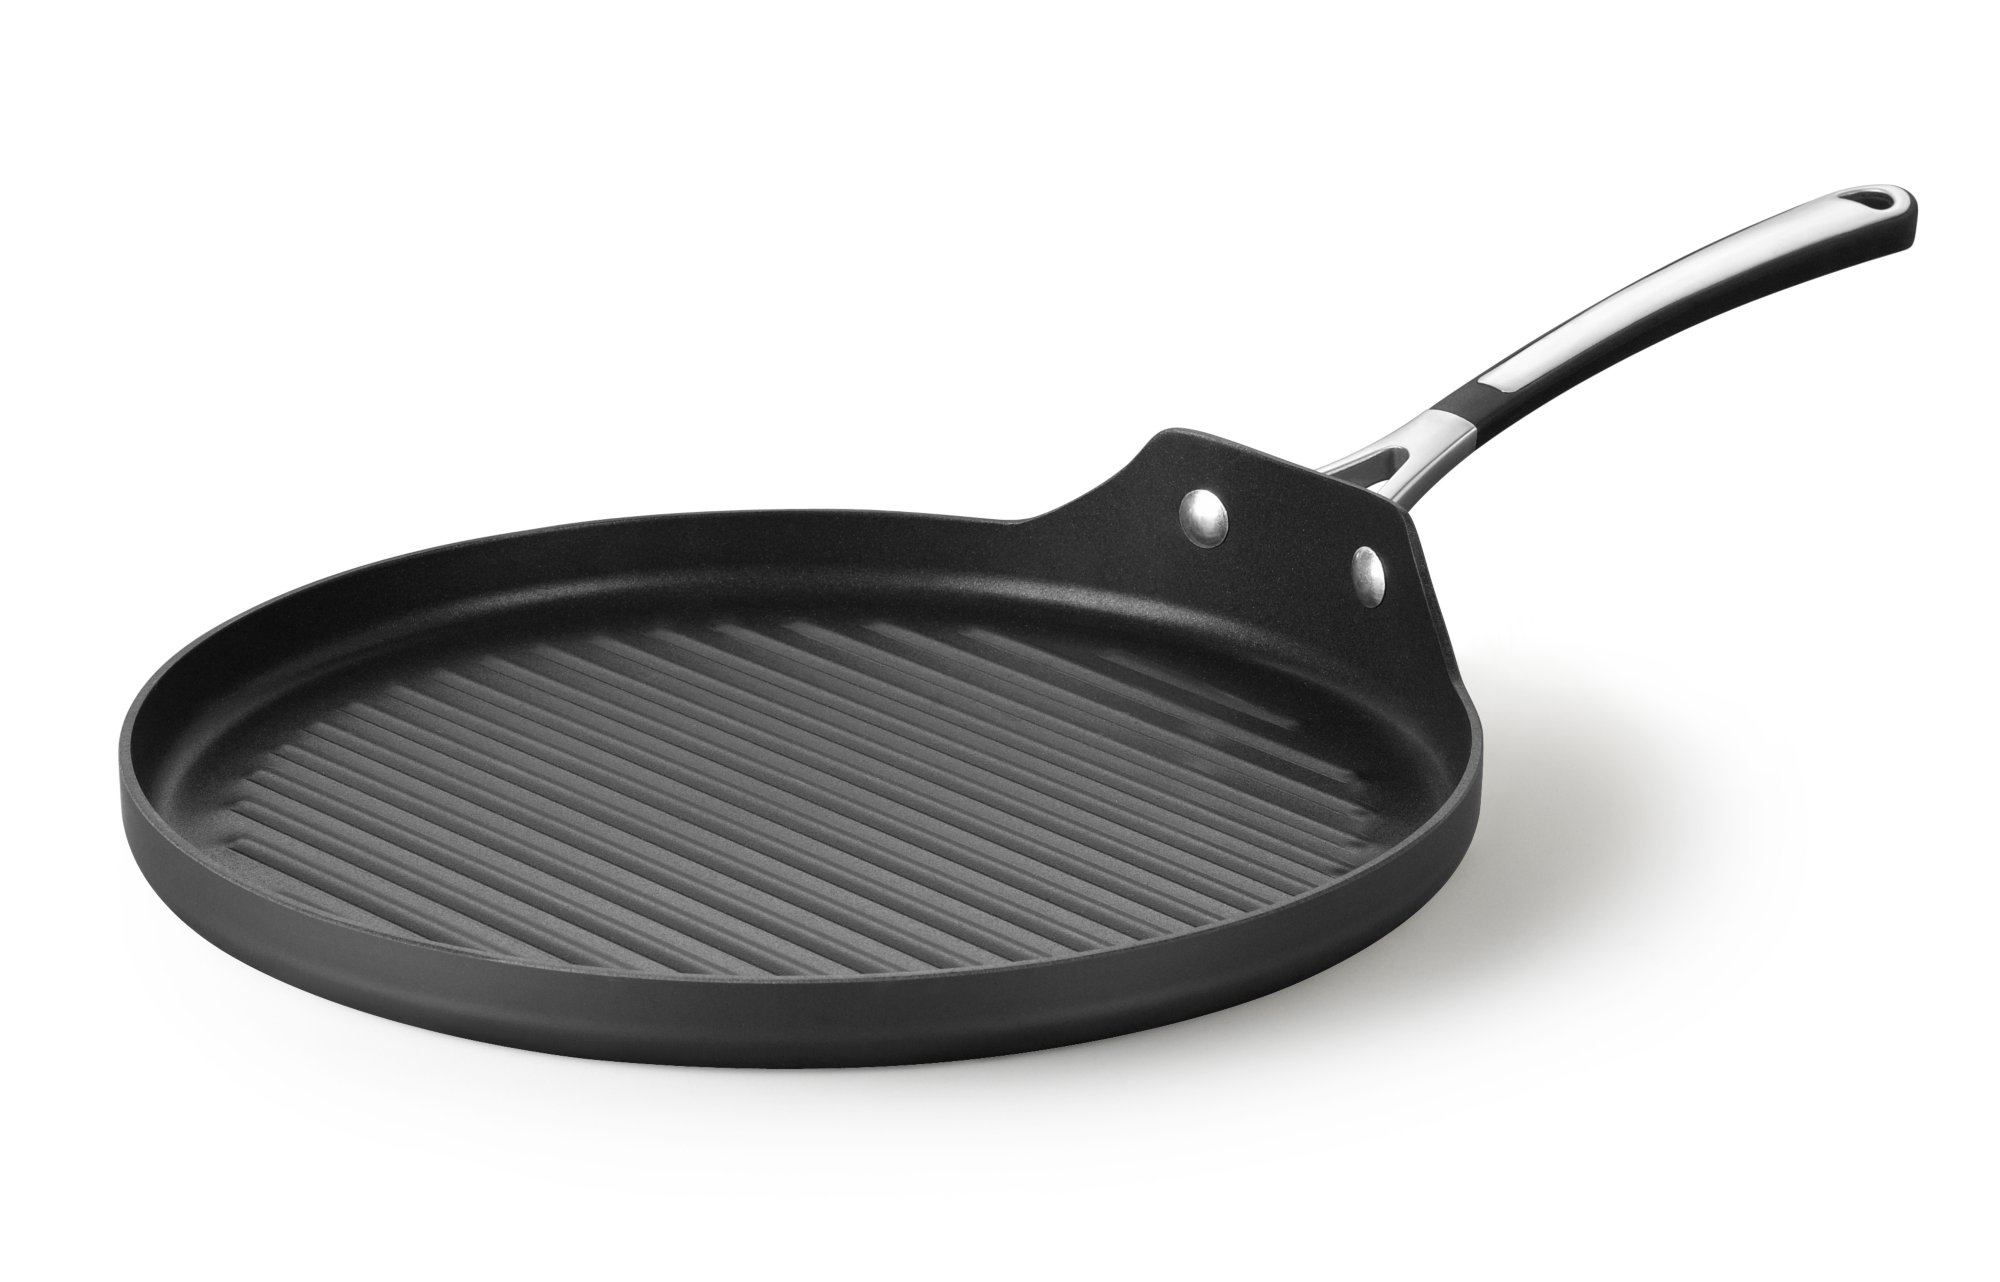 Simply Calphalon Nonstick 13